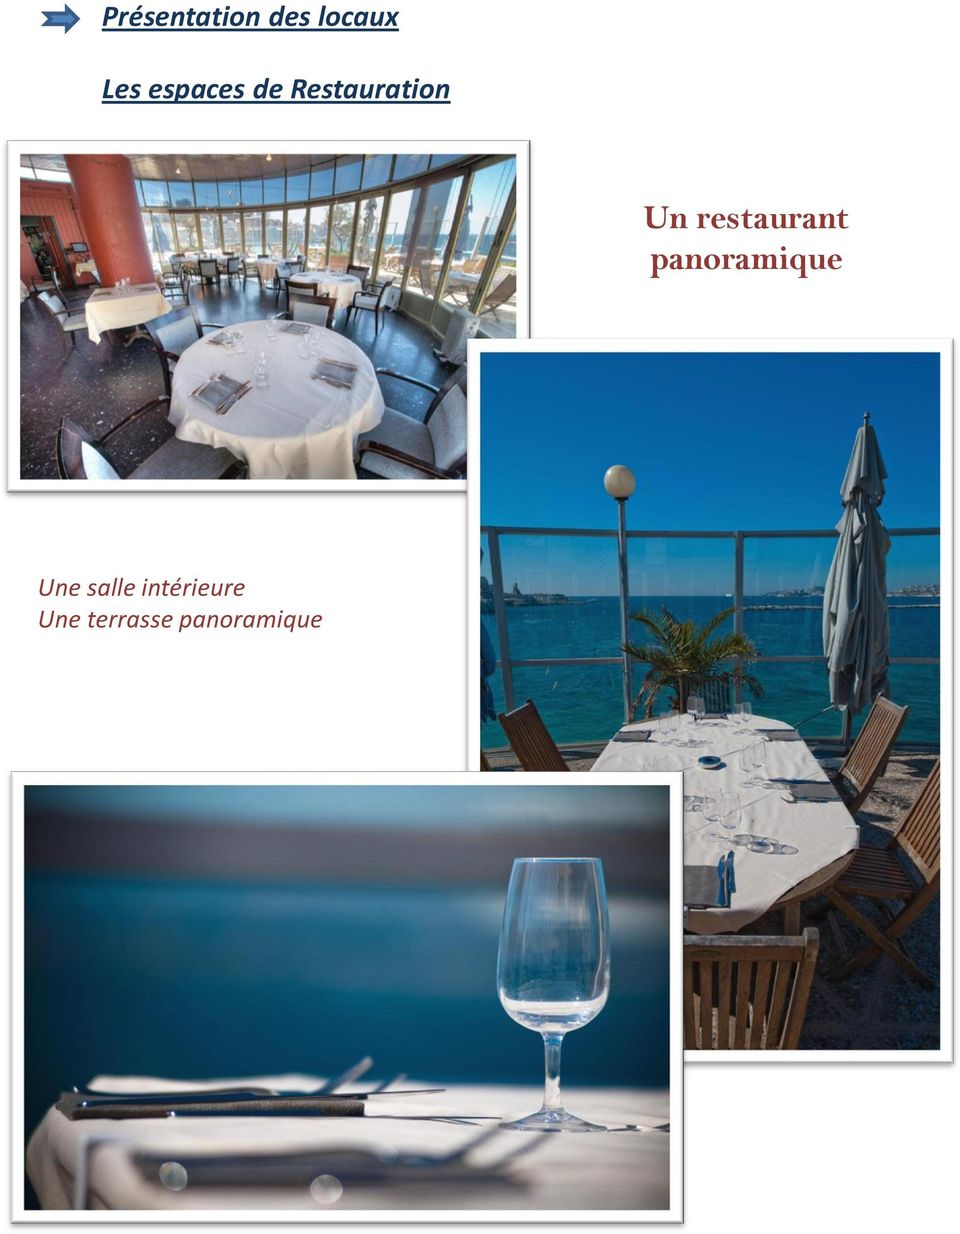 restaurant panoramique Une